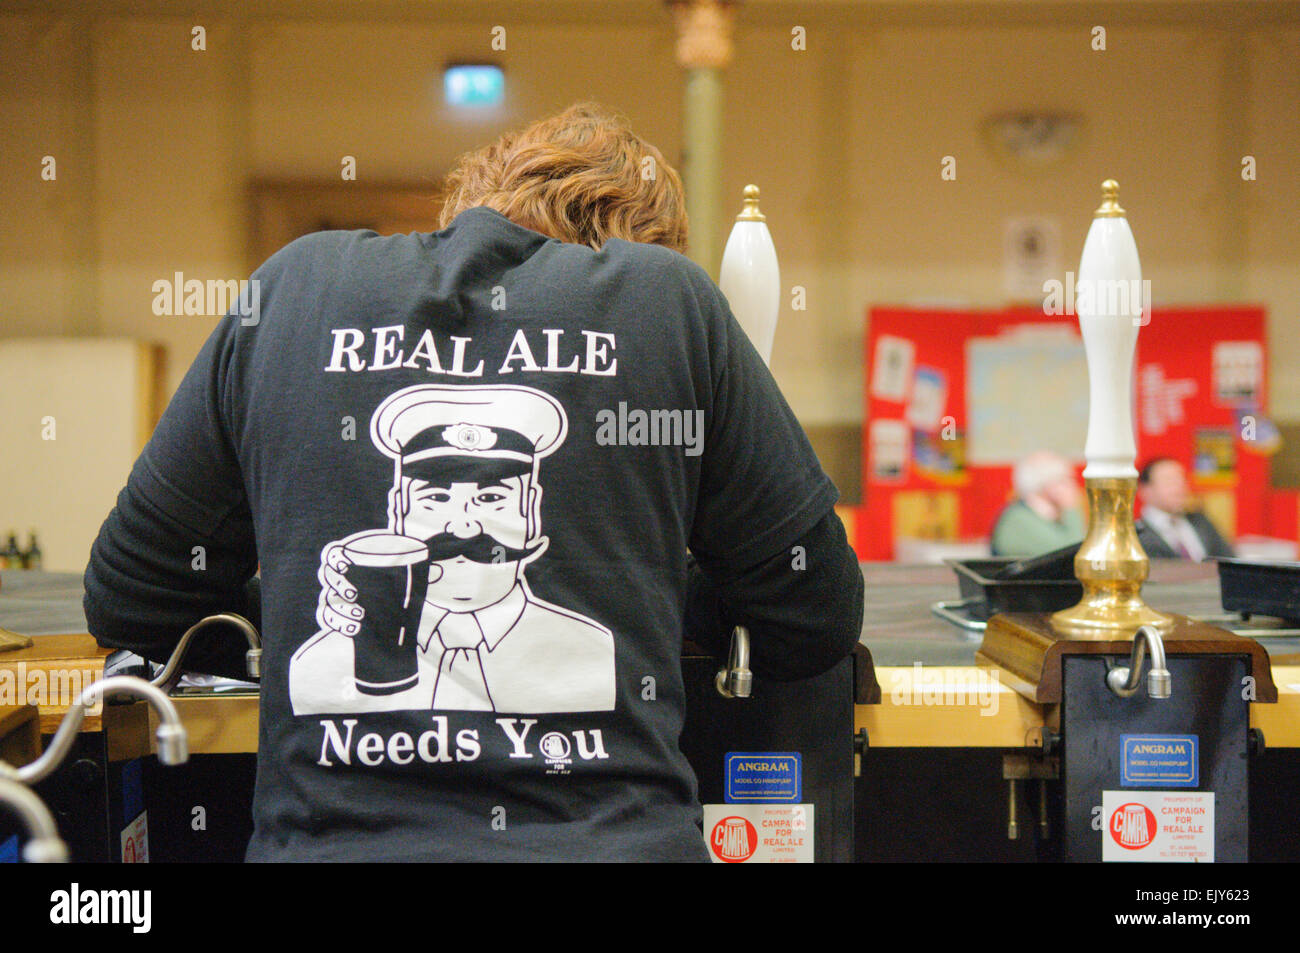 A bartender at a CAMRA Real Ale festival wears a tee shirt saying 'Real Ale Needs You' - Stock Image